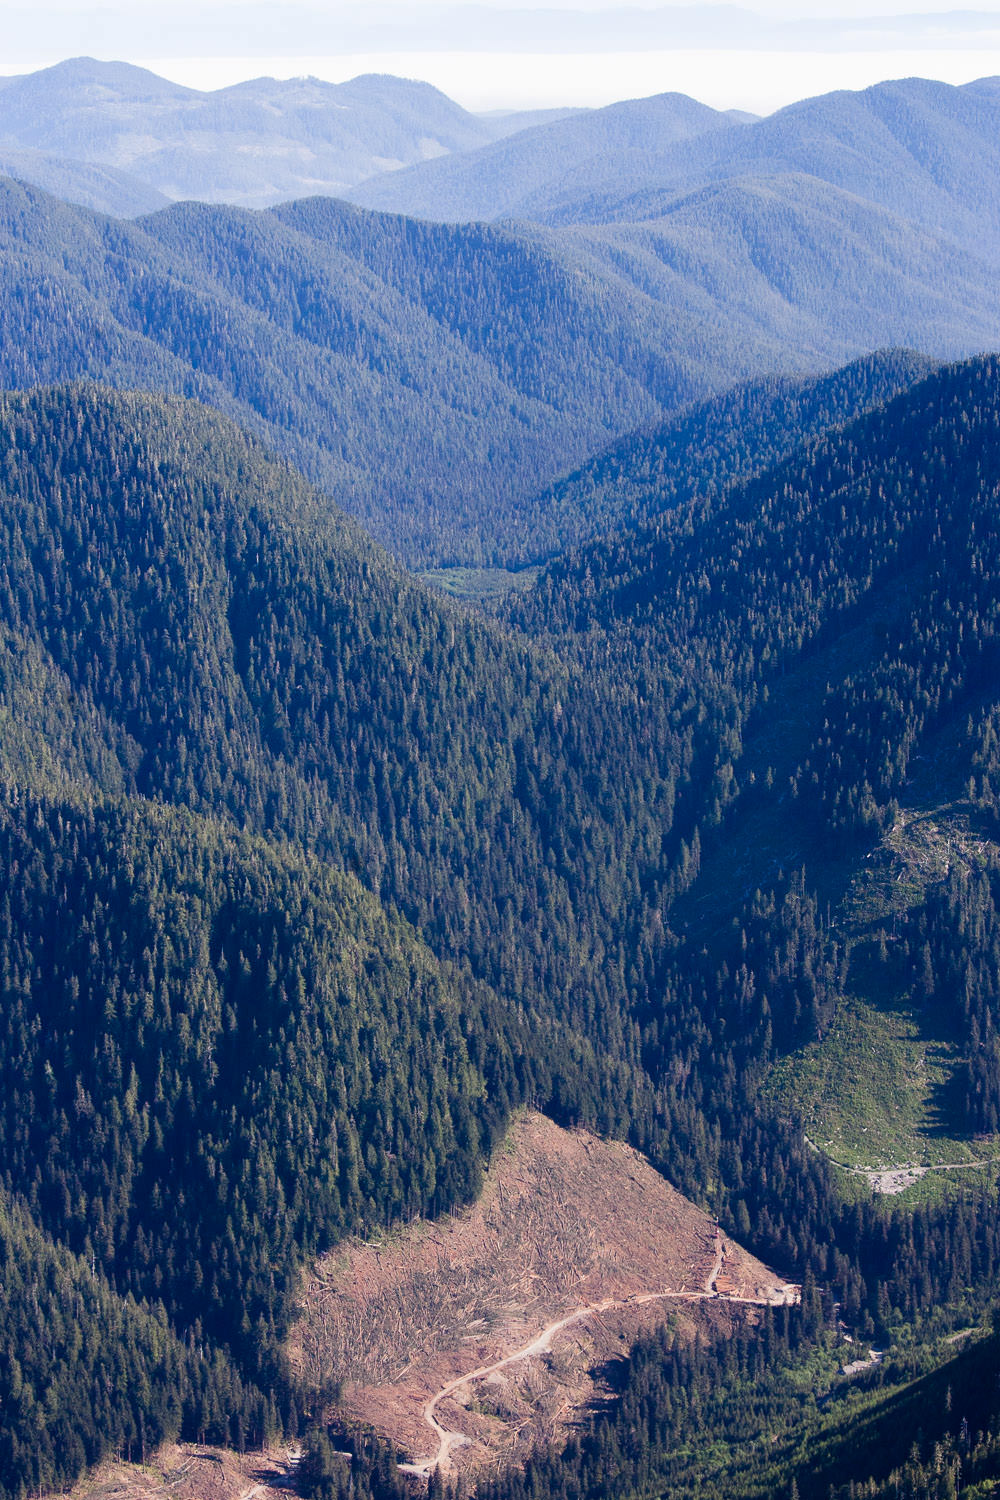 Active old-growth logging by Western Forest Products near the top of the Carmanah Valley, just outside the park boundaries.